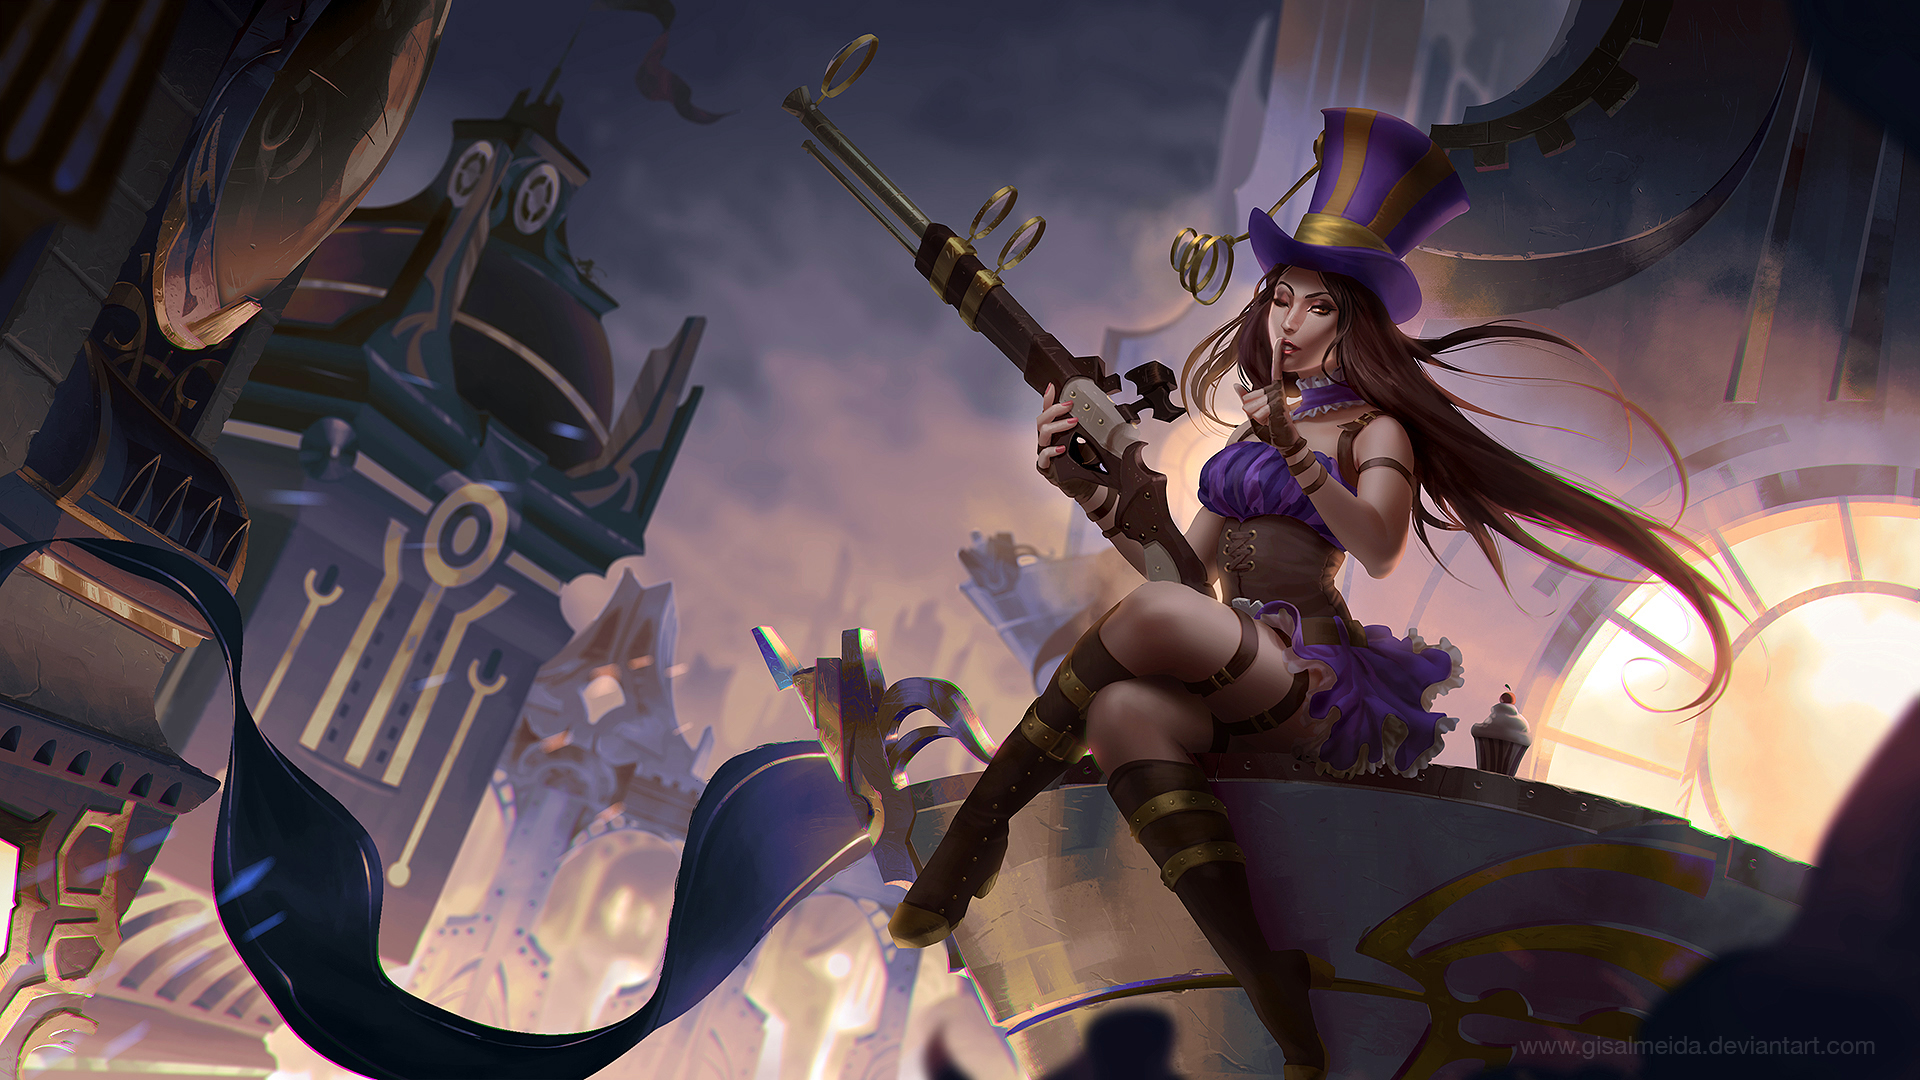 ... League of Legends: Caitlyn by GisAlmeida